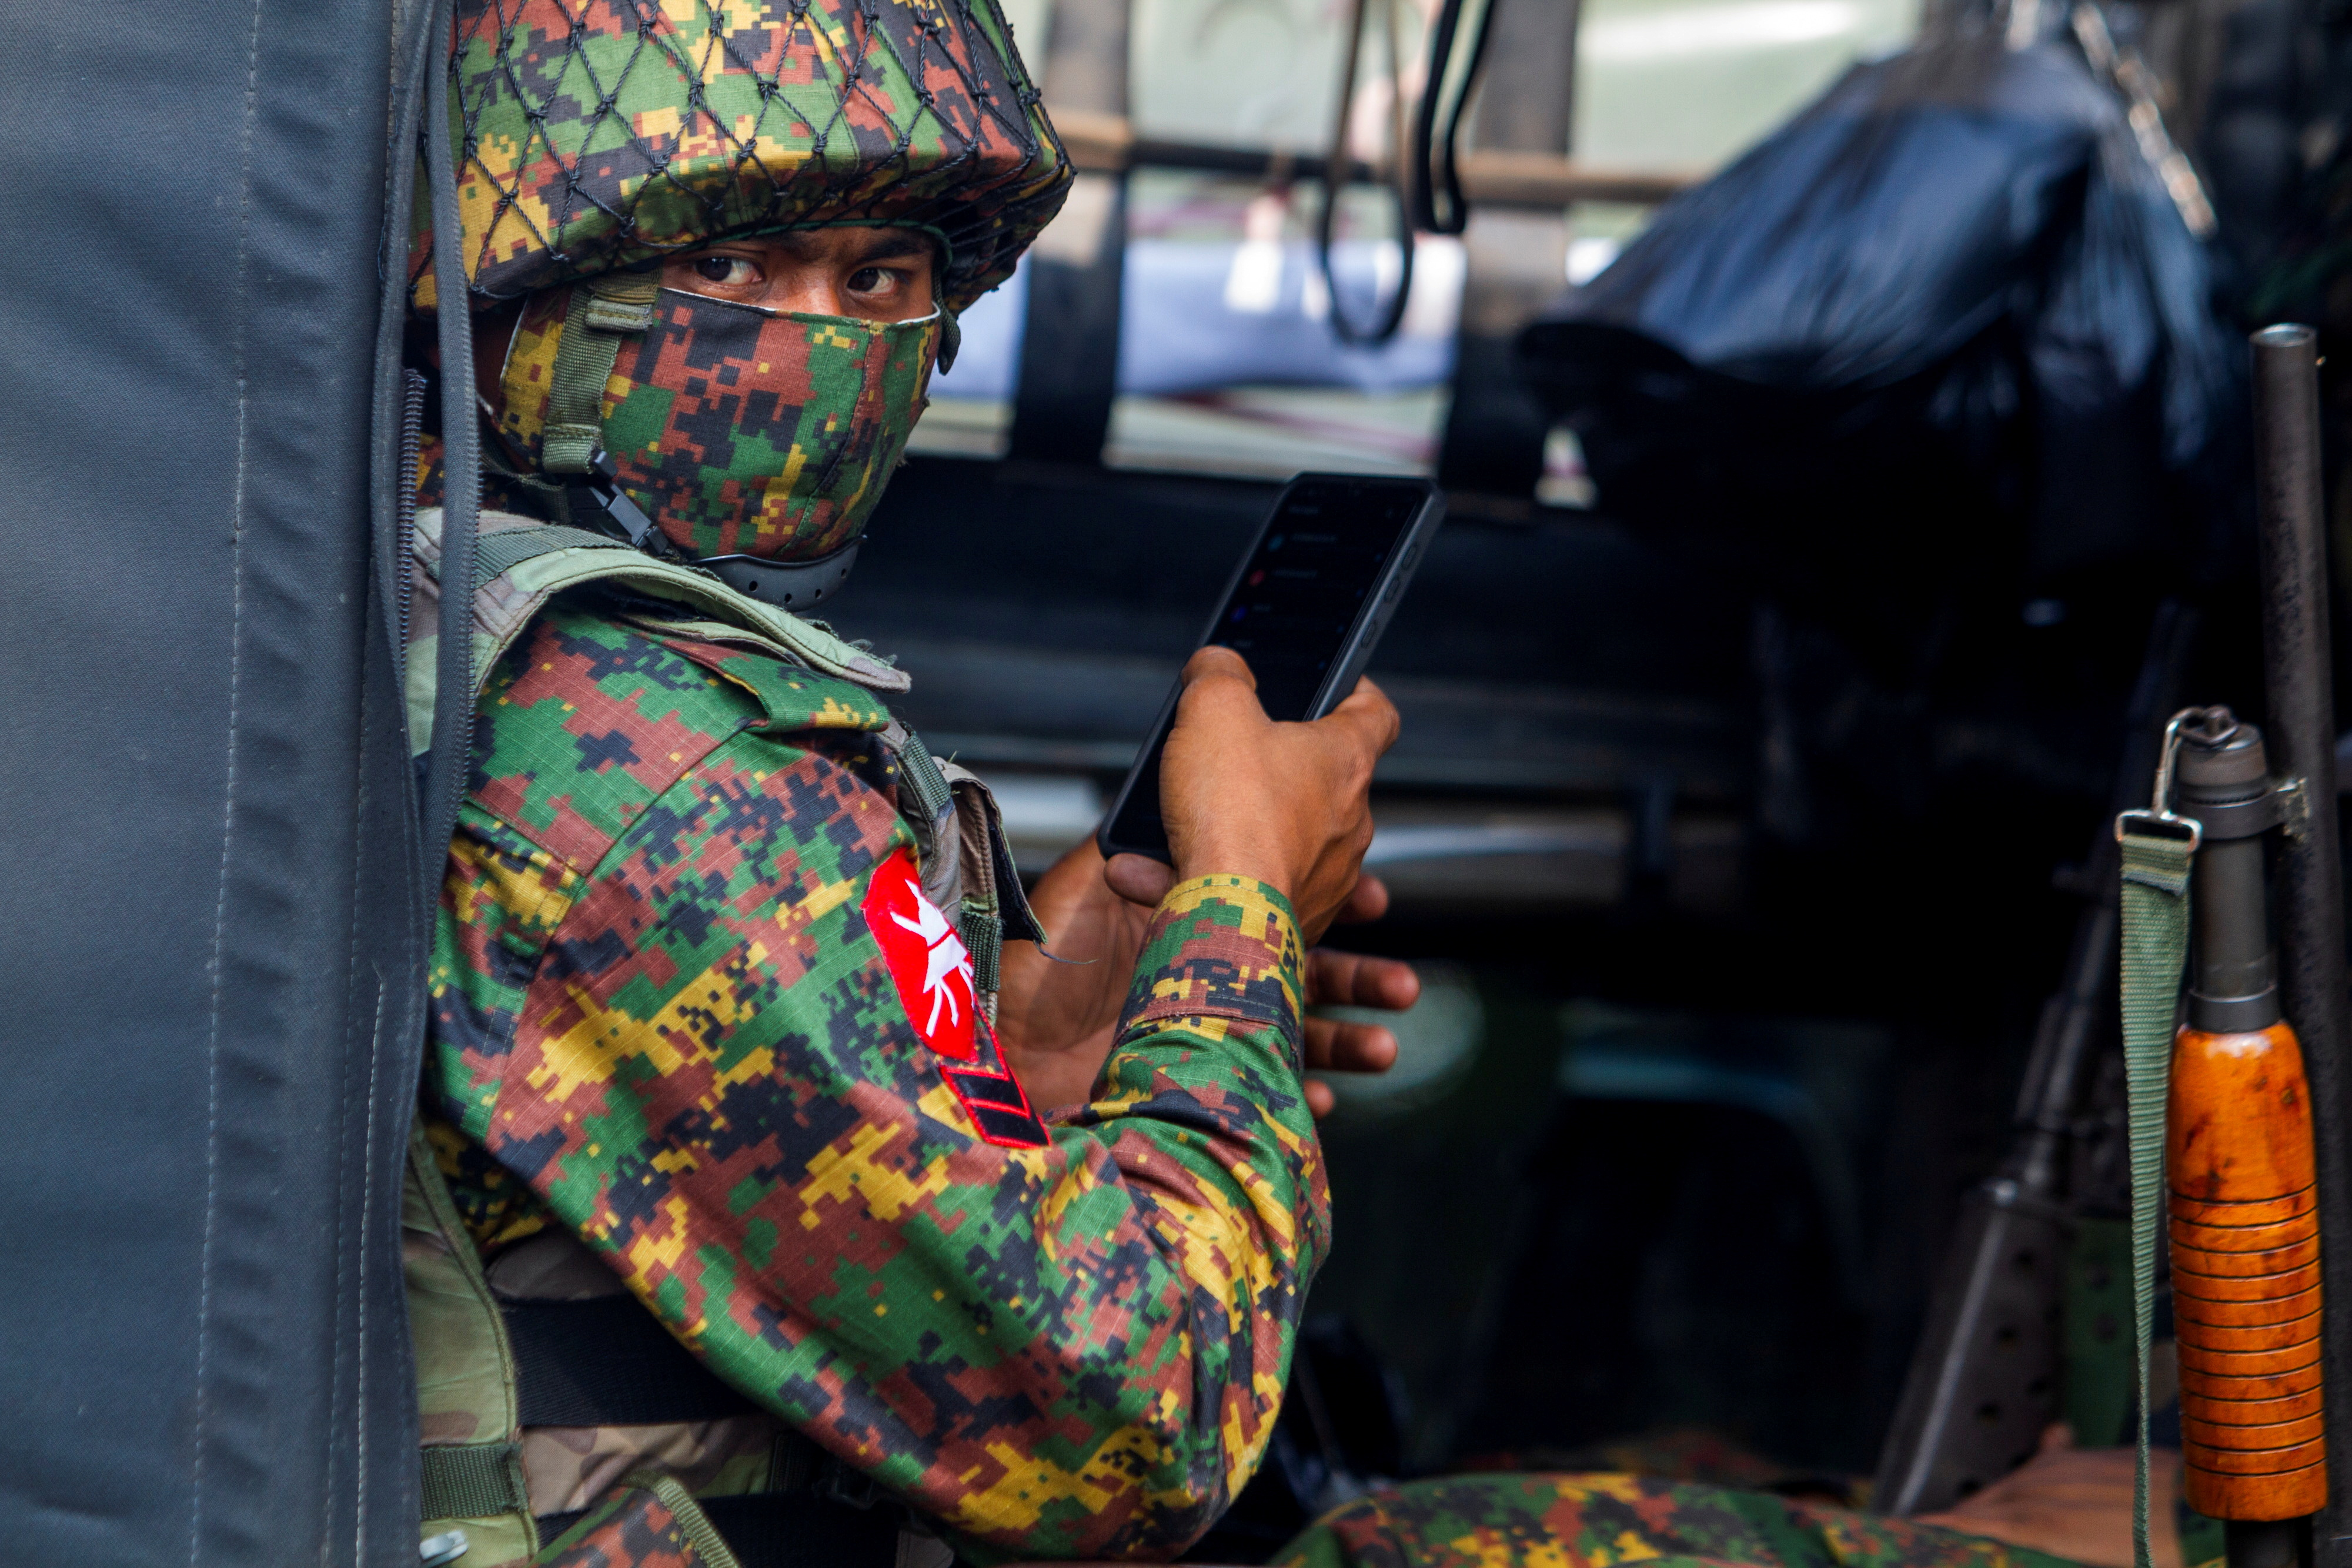 A soldier uses a mobile phone as he sits inside a military vehicle outside Myanmar's Central Bank during a protest against the military coup, in Yangon, Myanmar, February 15, 2021. REUTERS/Stringer